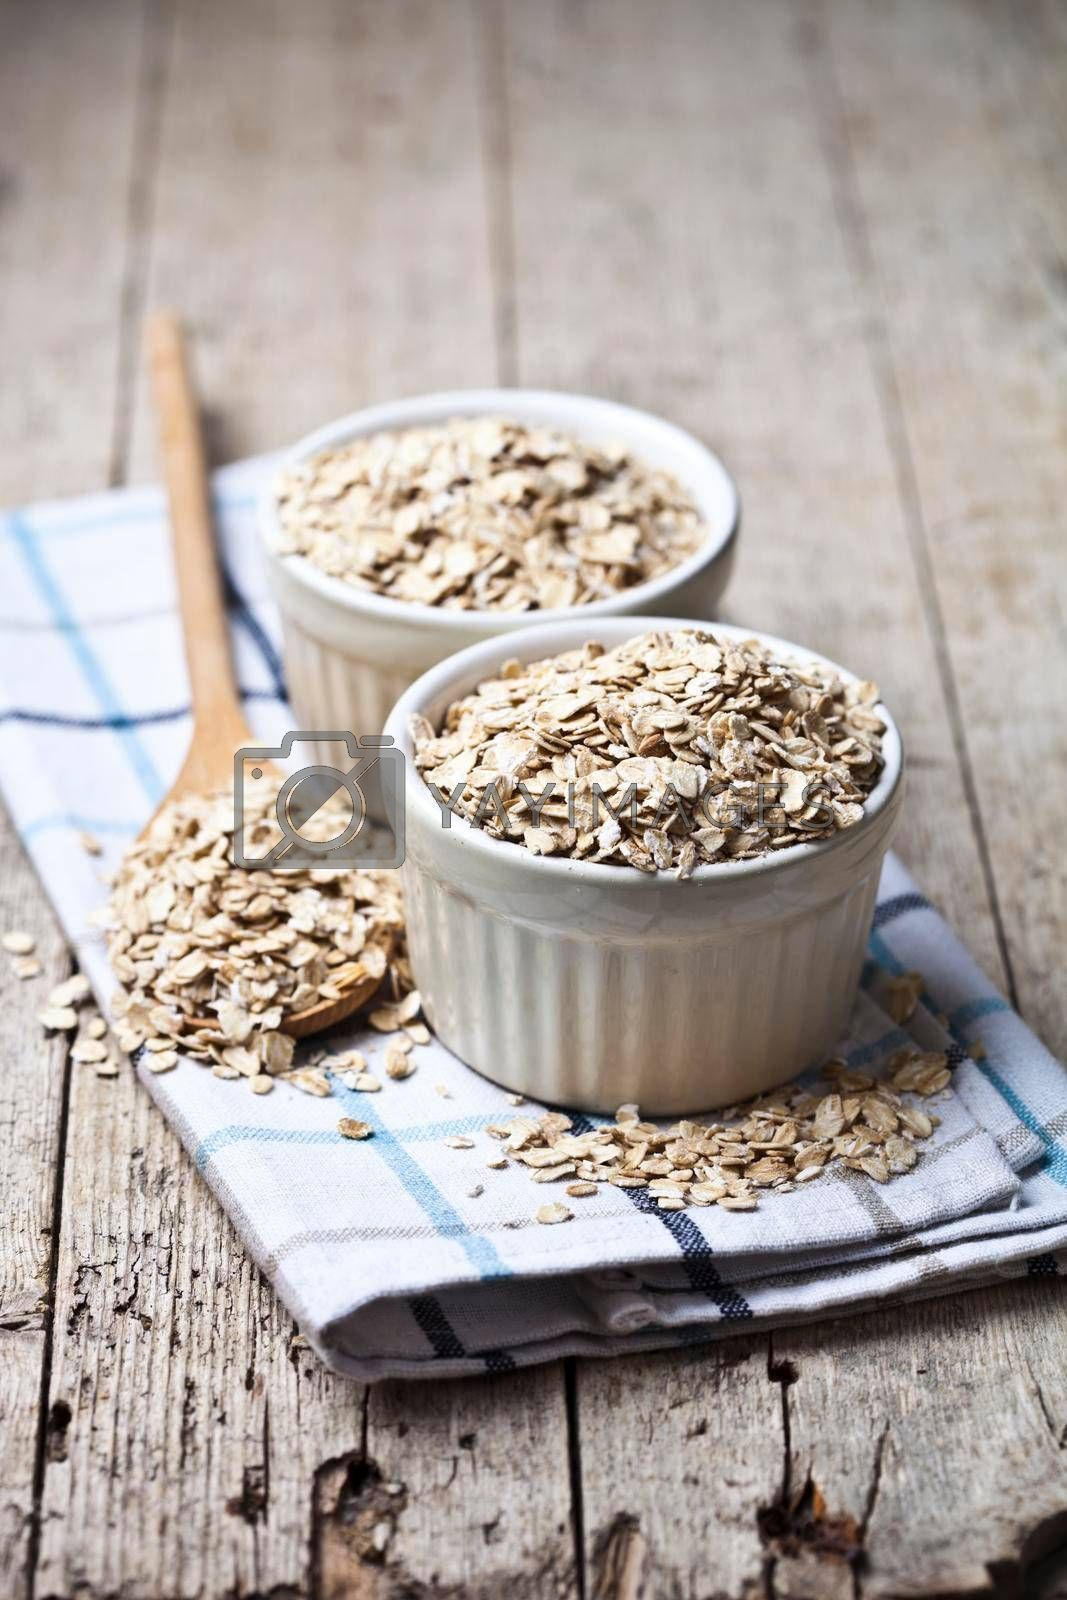 Oat flakes in ceramic bowls and wooden spoon on linen napkin, golden wheat ears on rustic wooden background. Healthy lifestyle, healthy eating concept.